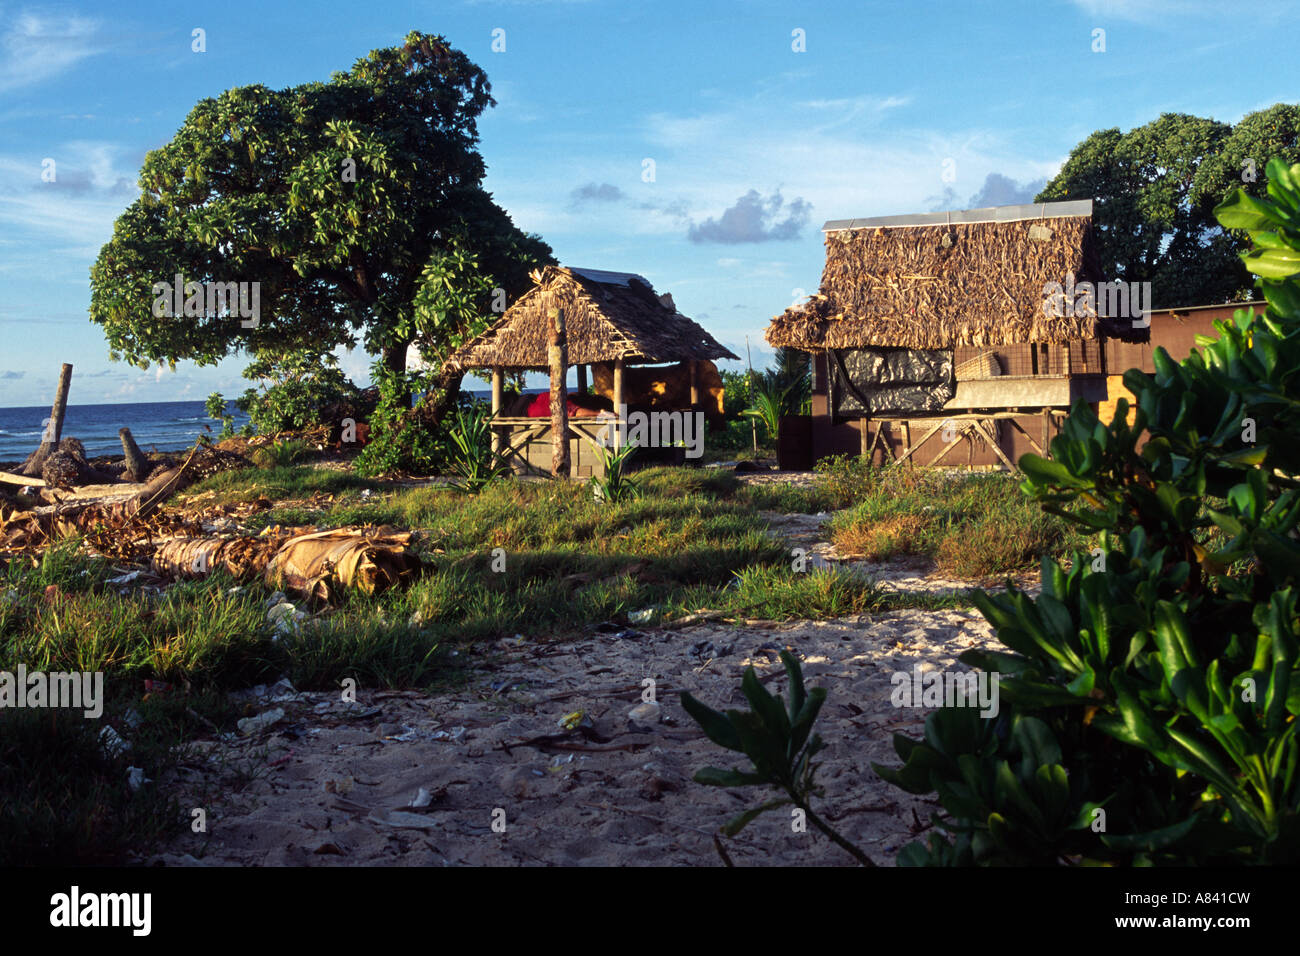 A typical House in Kiribati, South Pacific - Stock Image